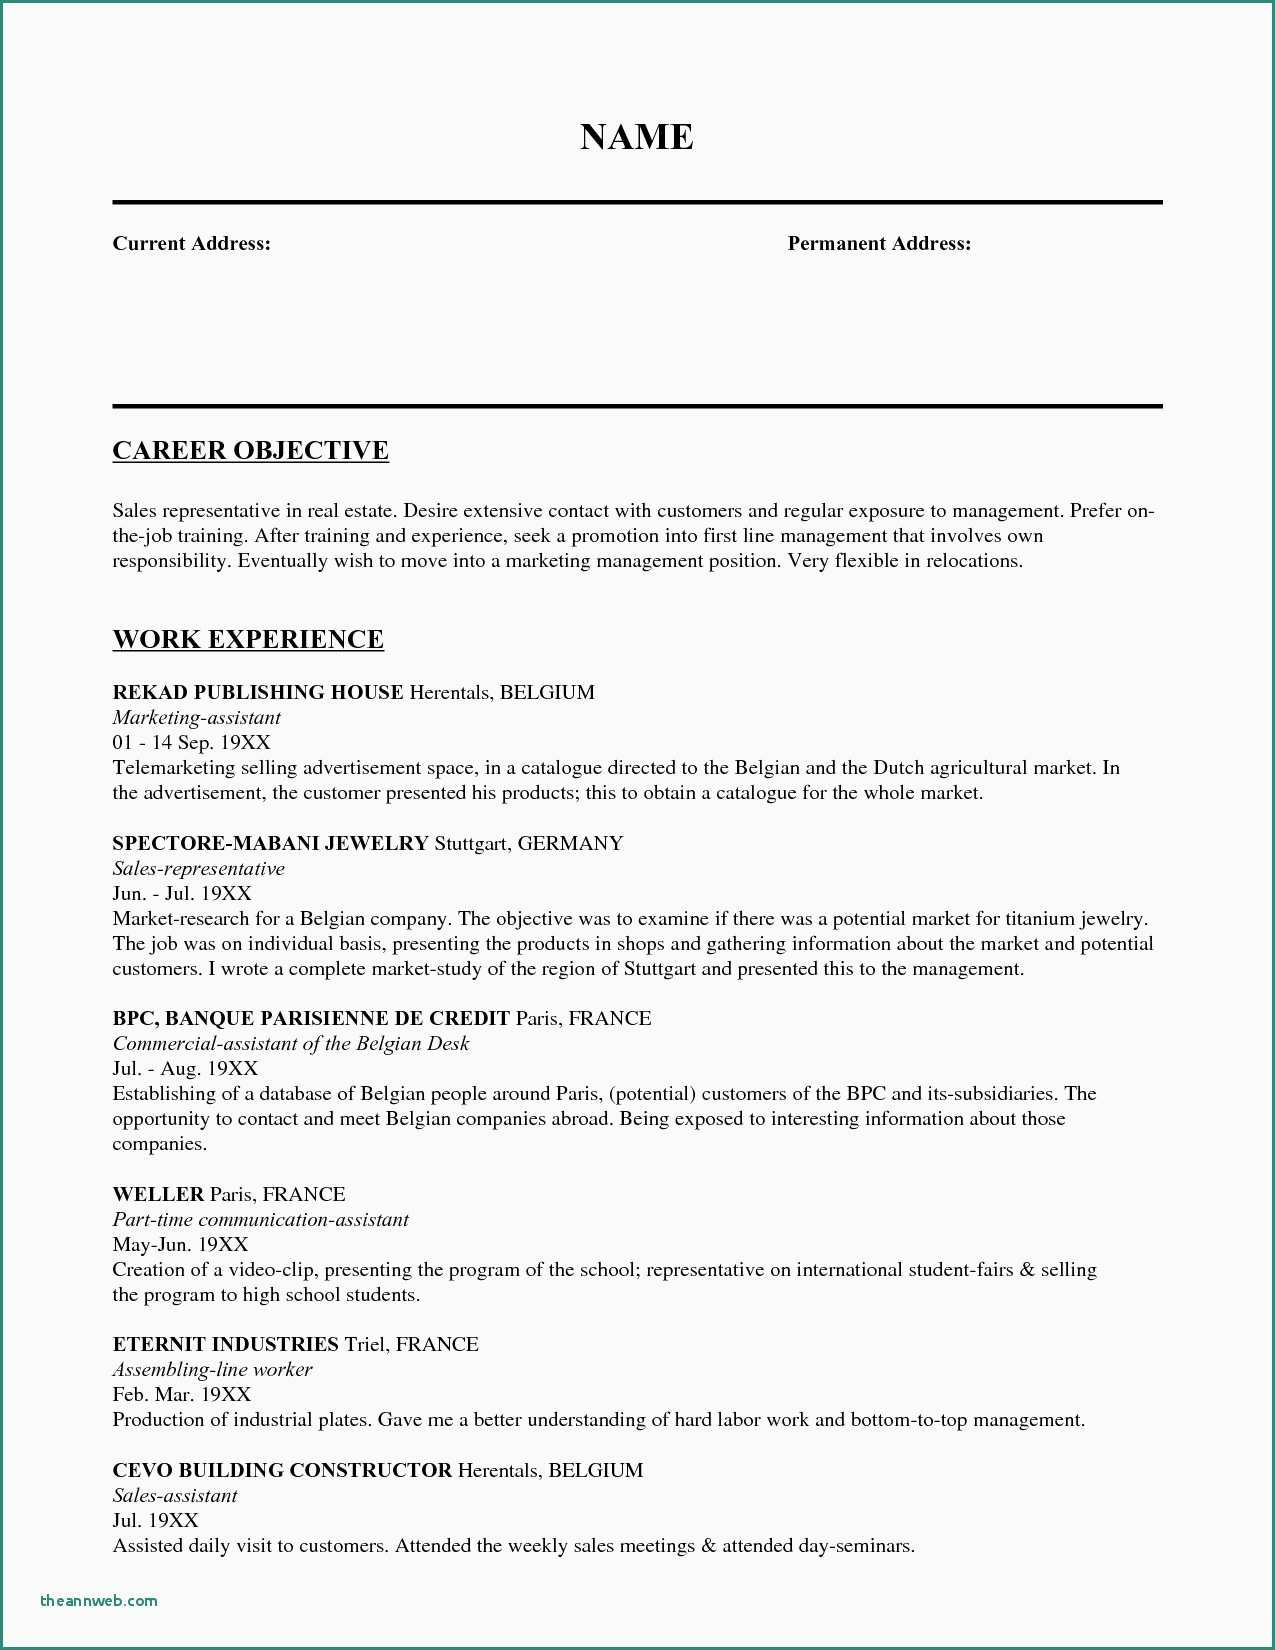 79 Luxury Collection Of Sample Resume For Nurses Going Abroad